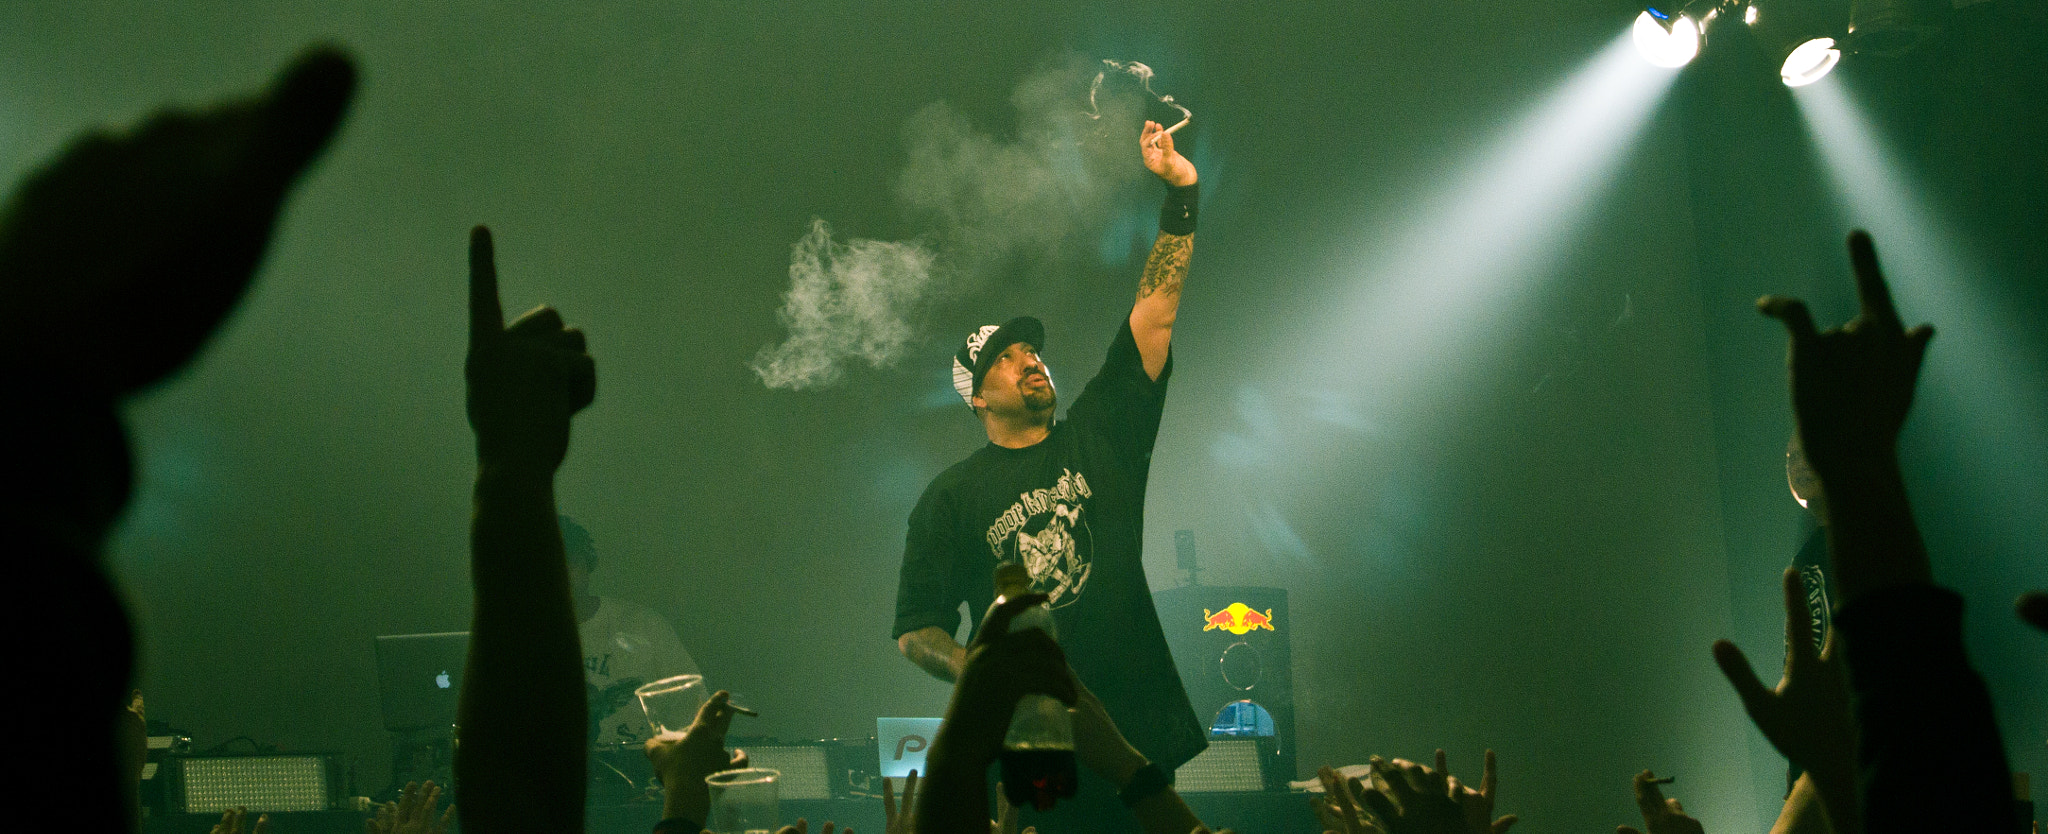 Photograph B-Real from cypress hill by Jakub Soukup on 500px